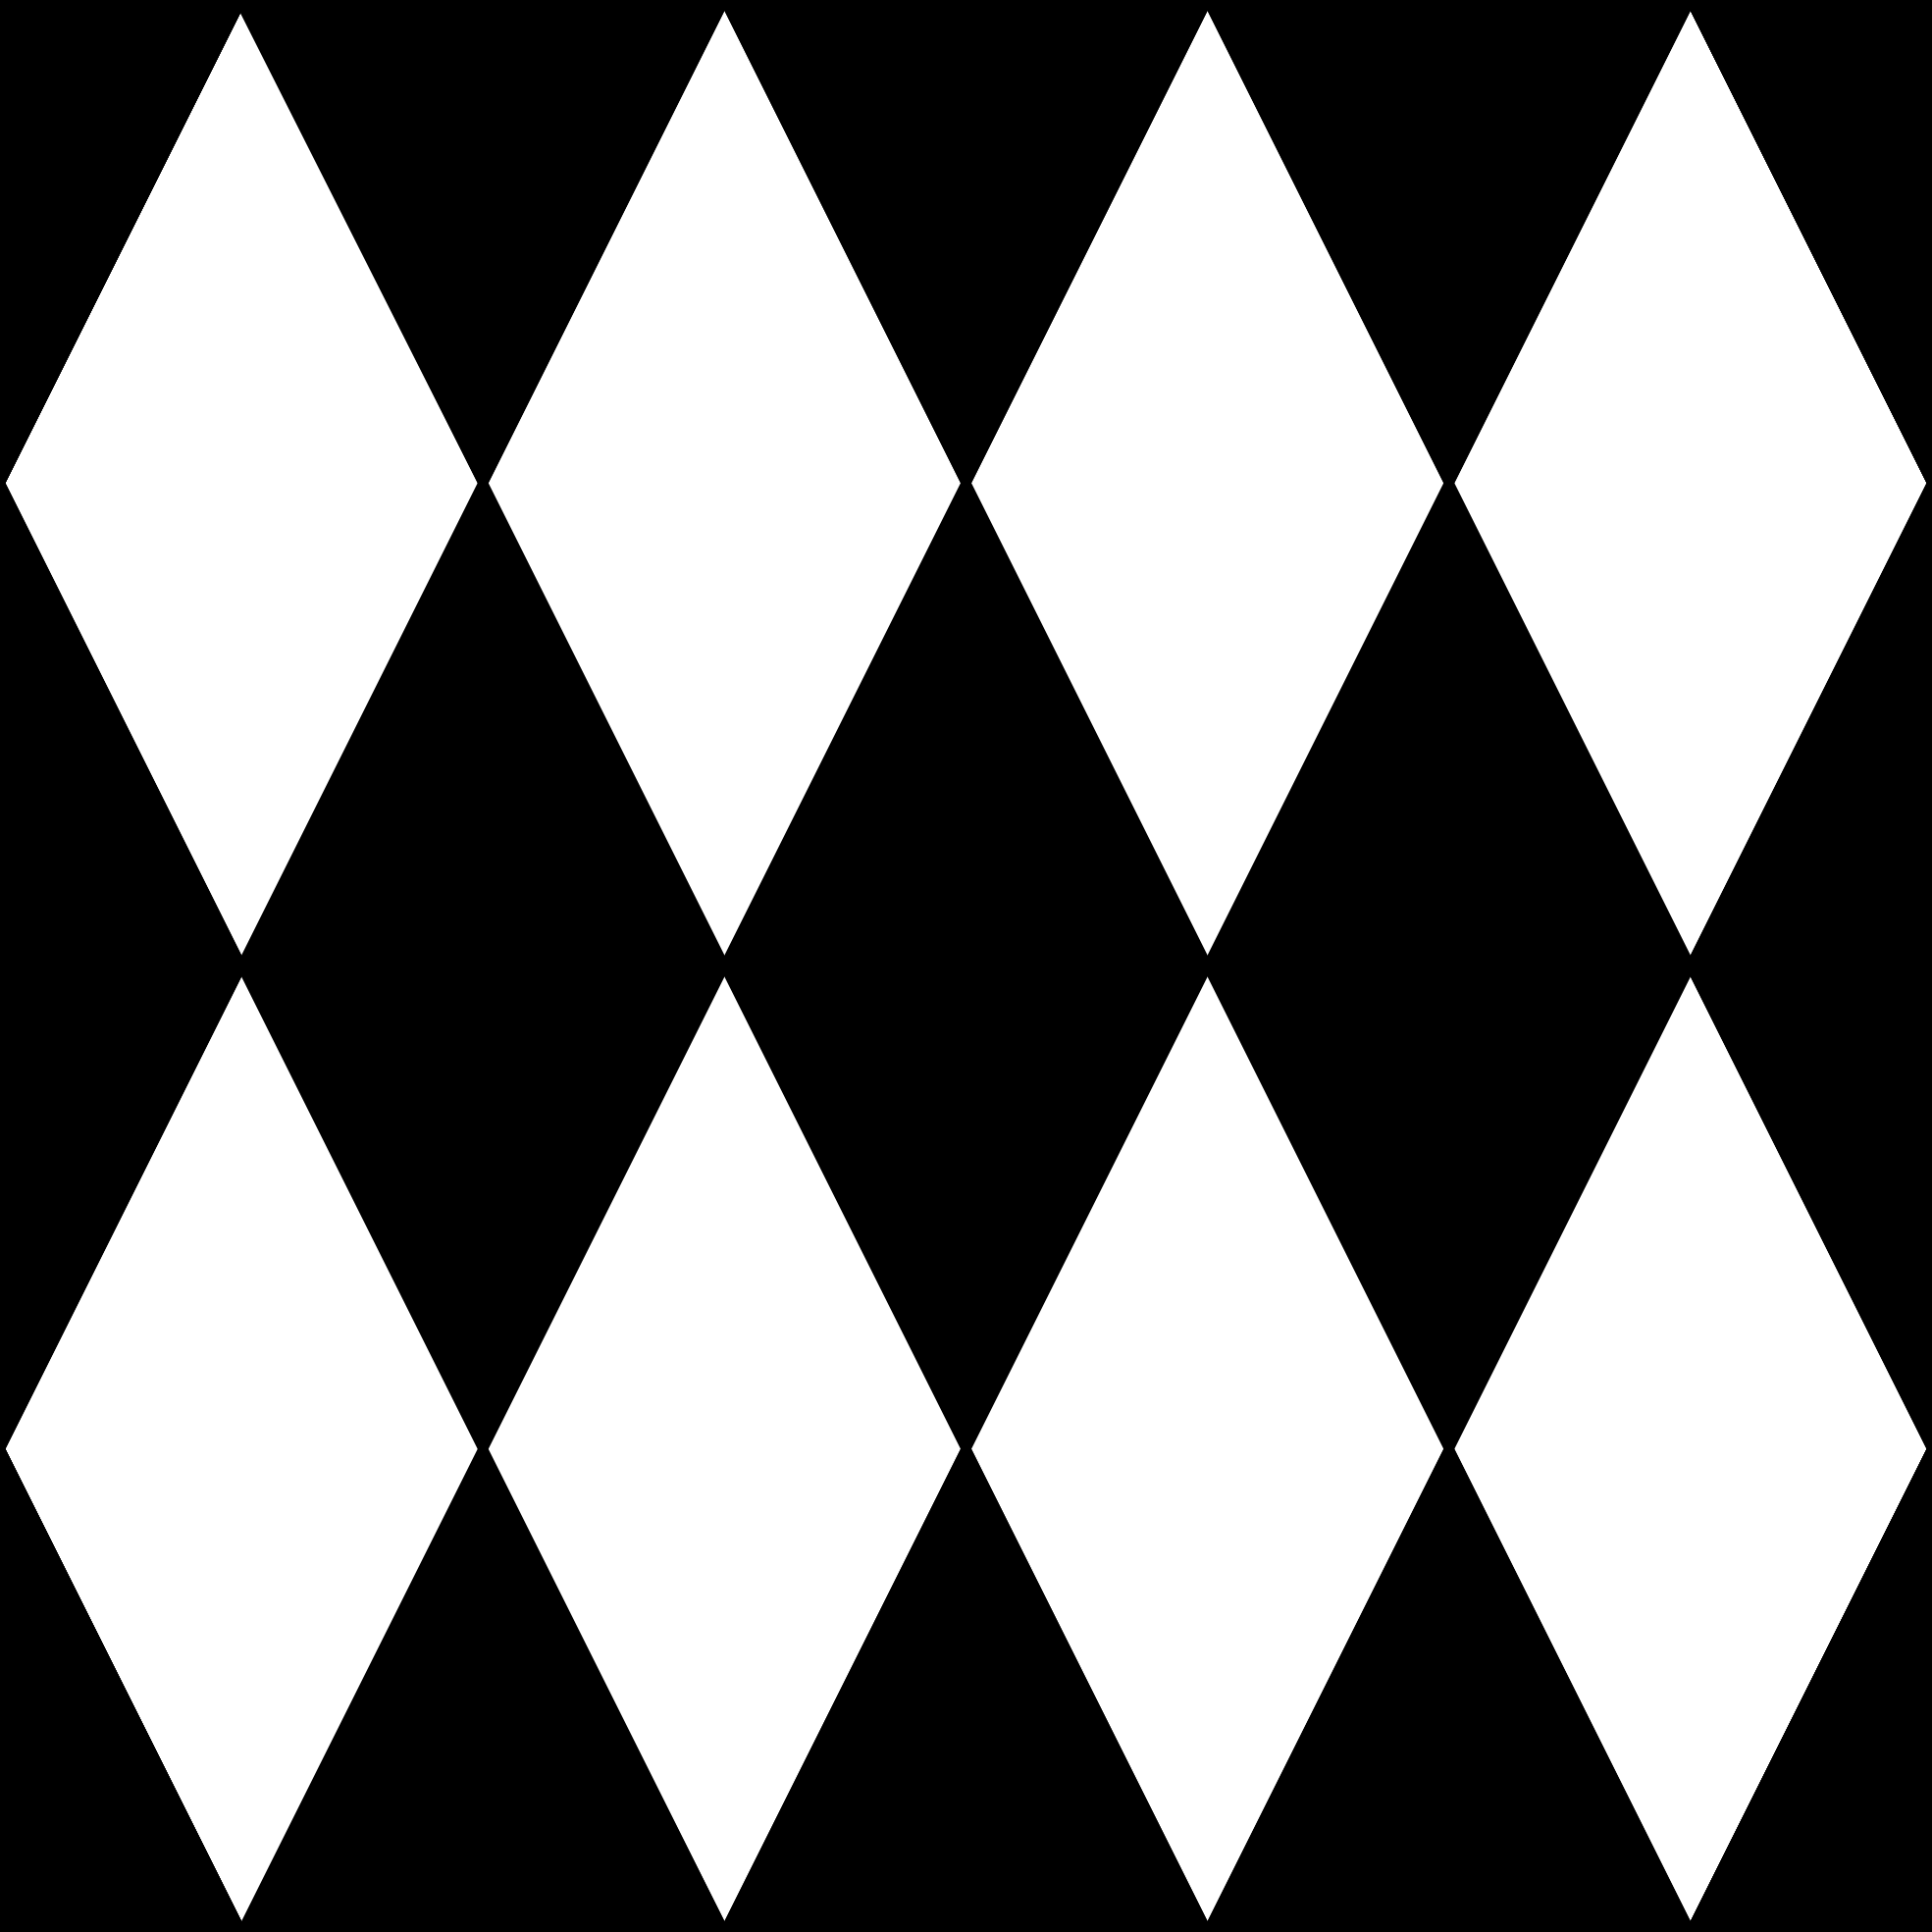 Harlequin Pattern Black And White B Patterns B Clip Art Clipart